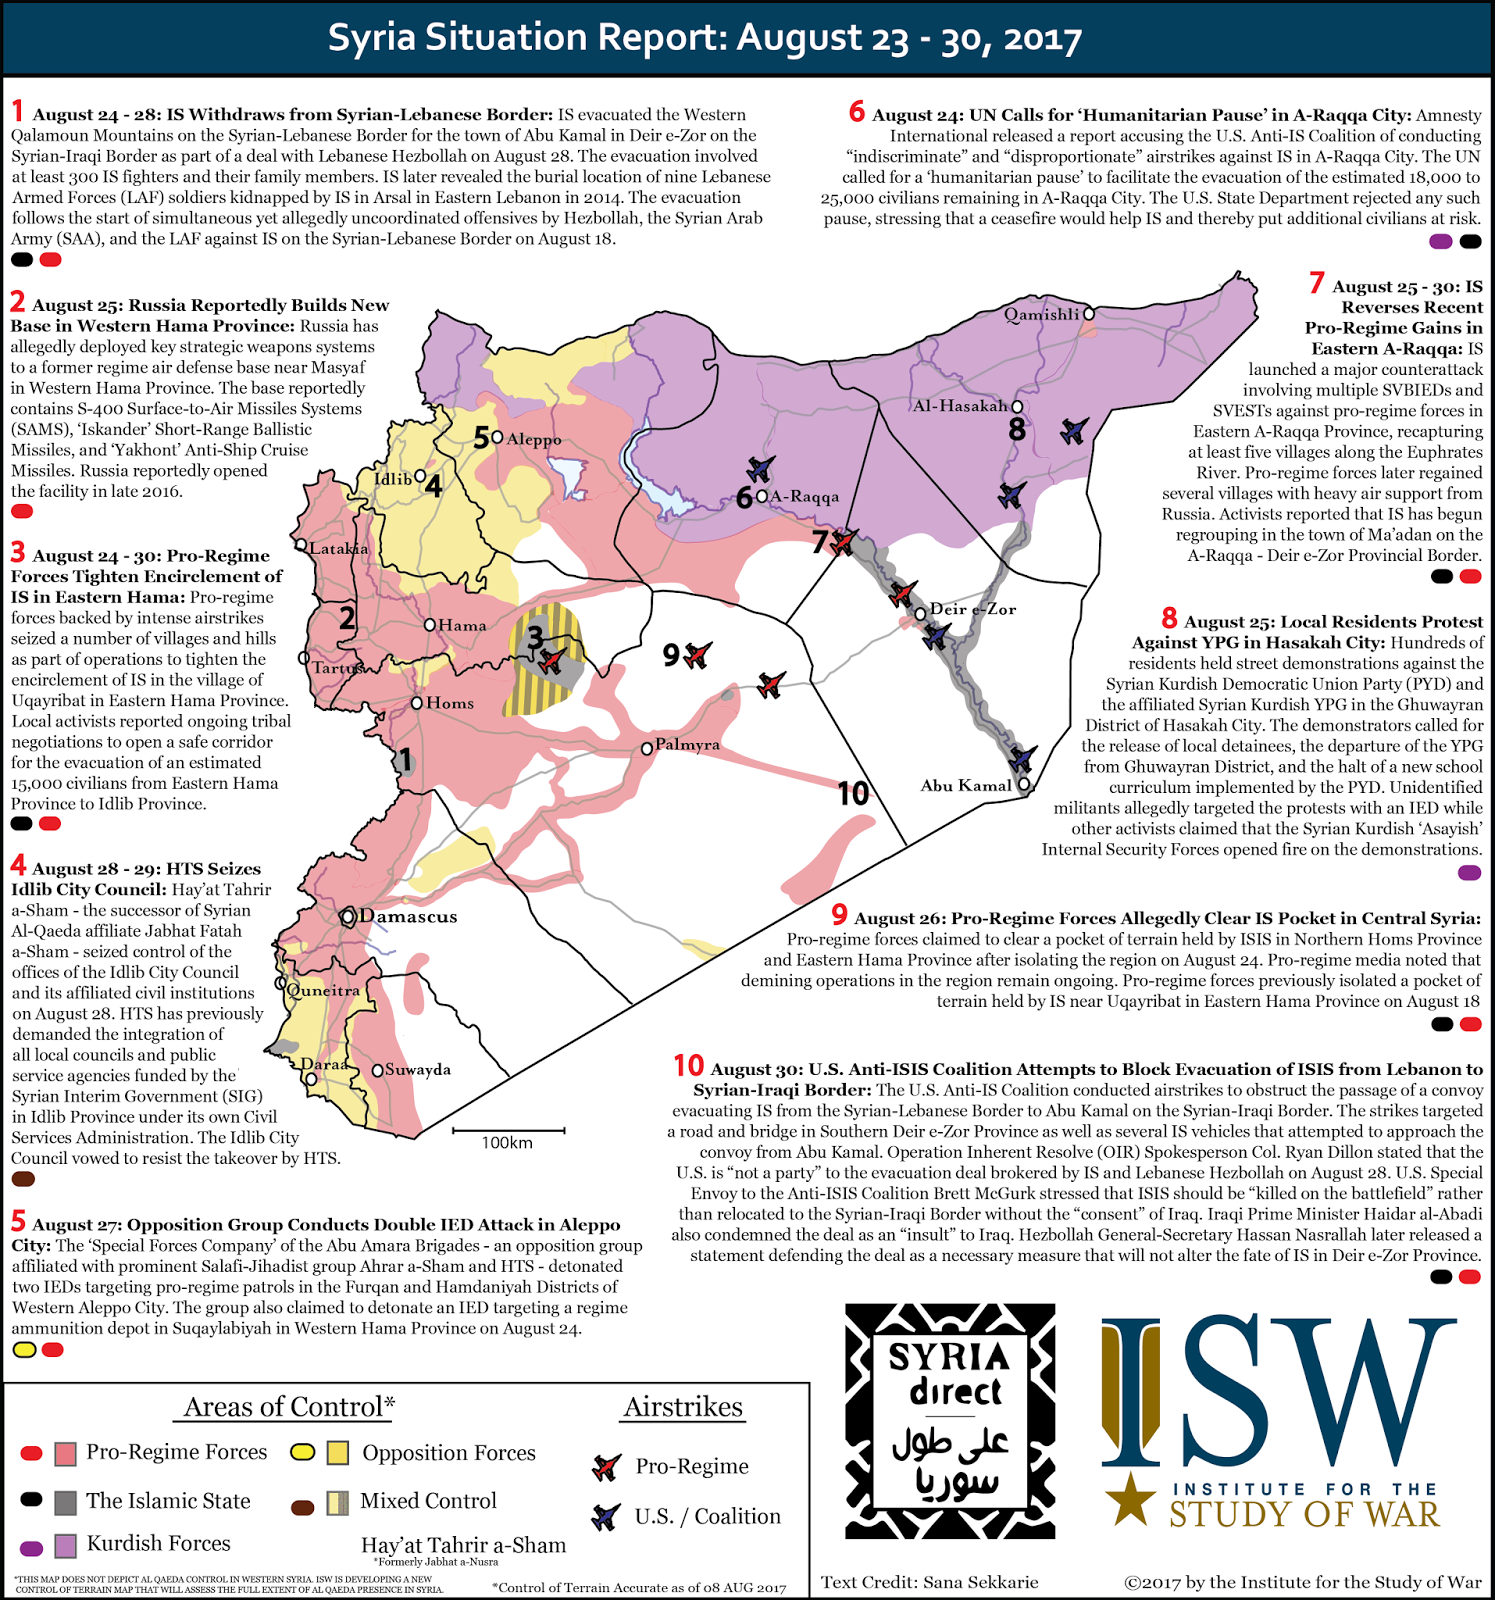 Syria Situation Report: August 23 - 30, 2017